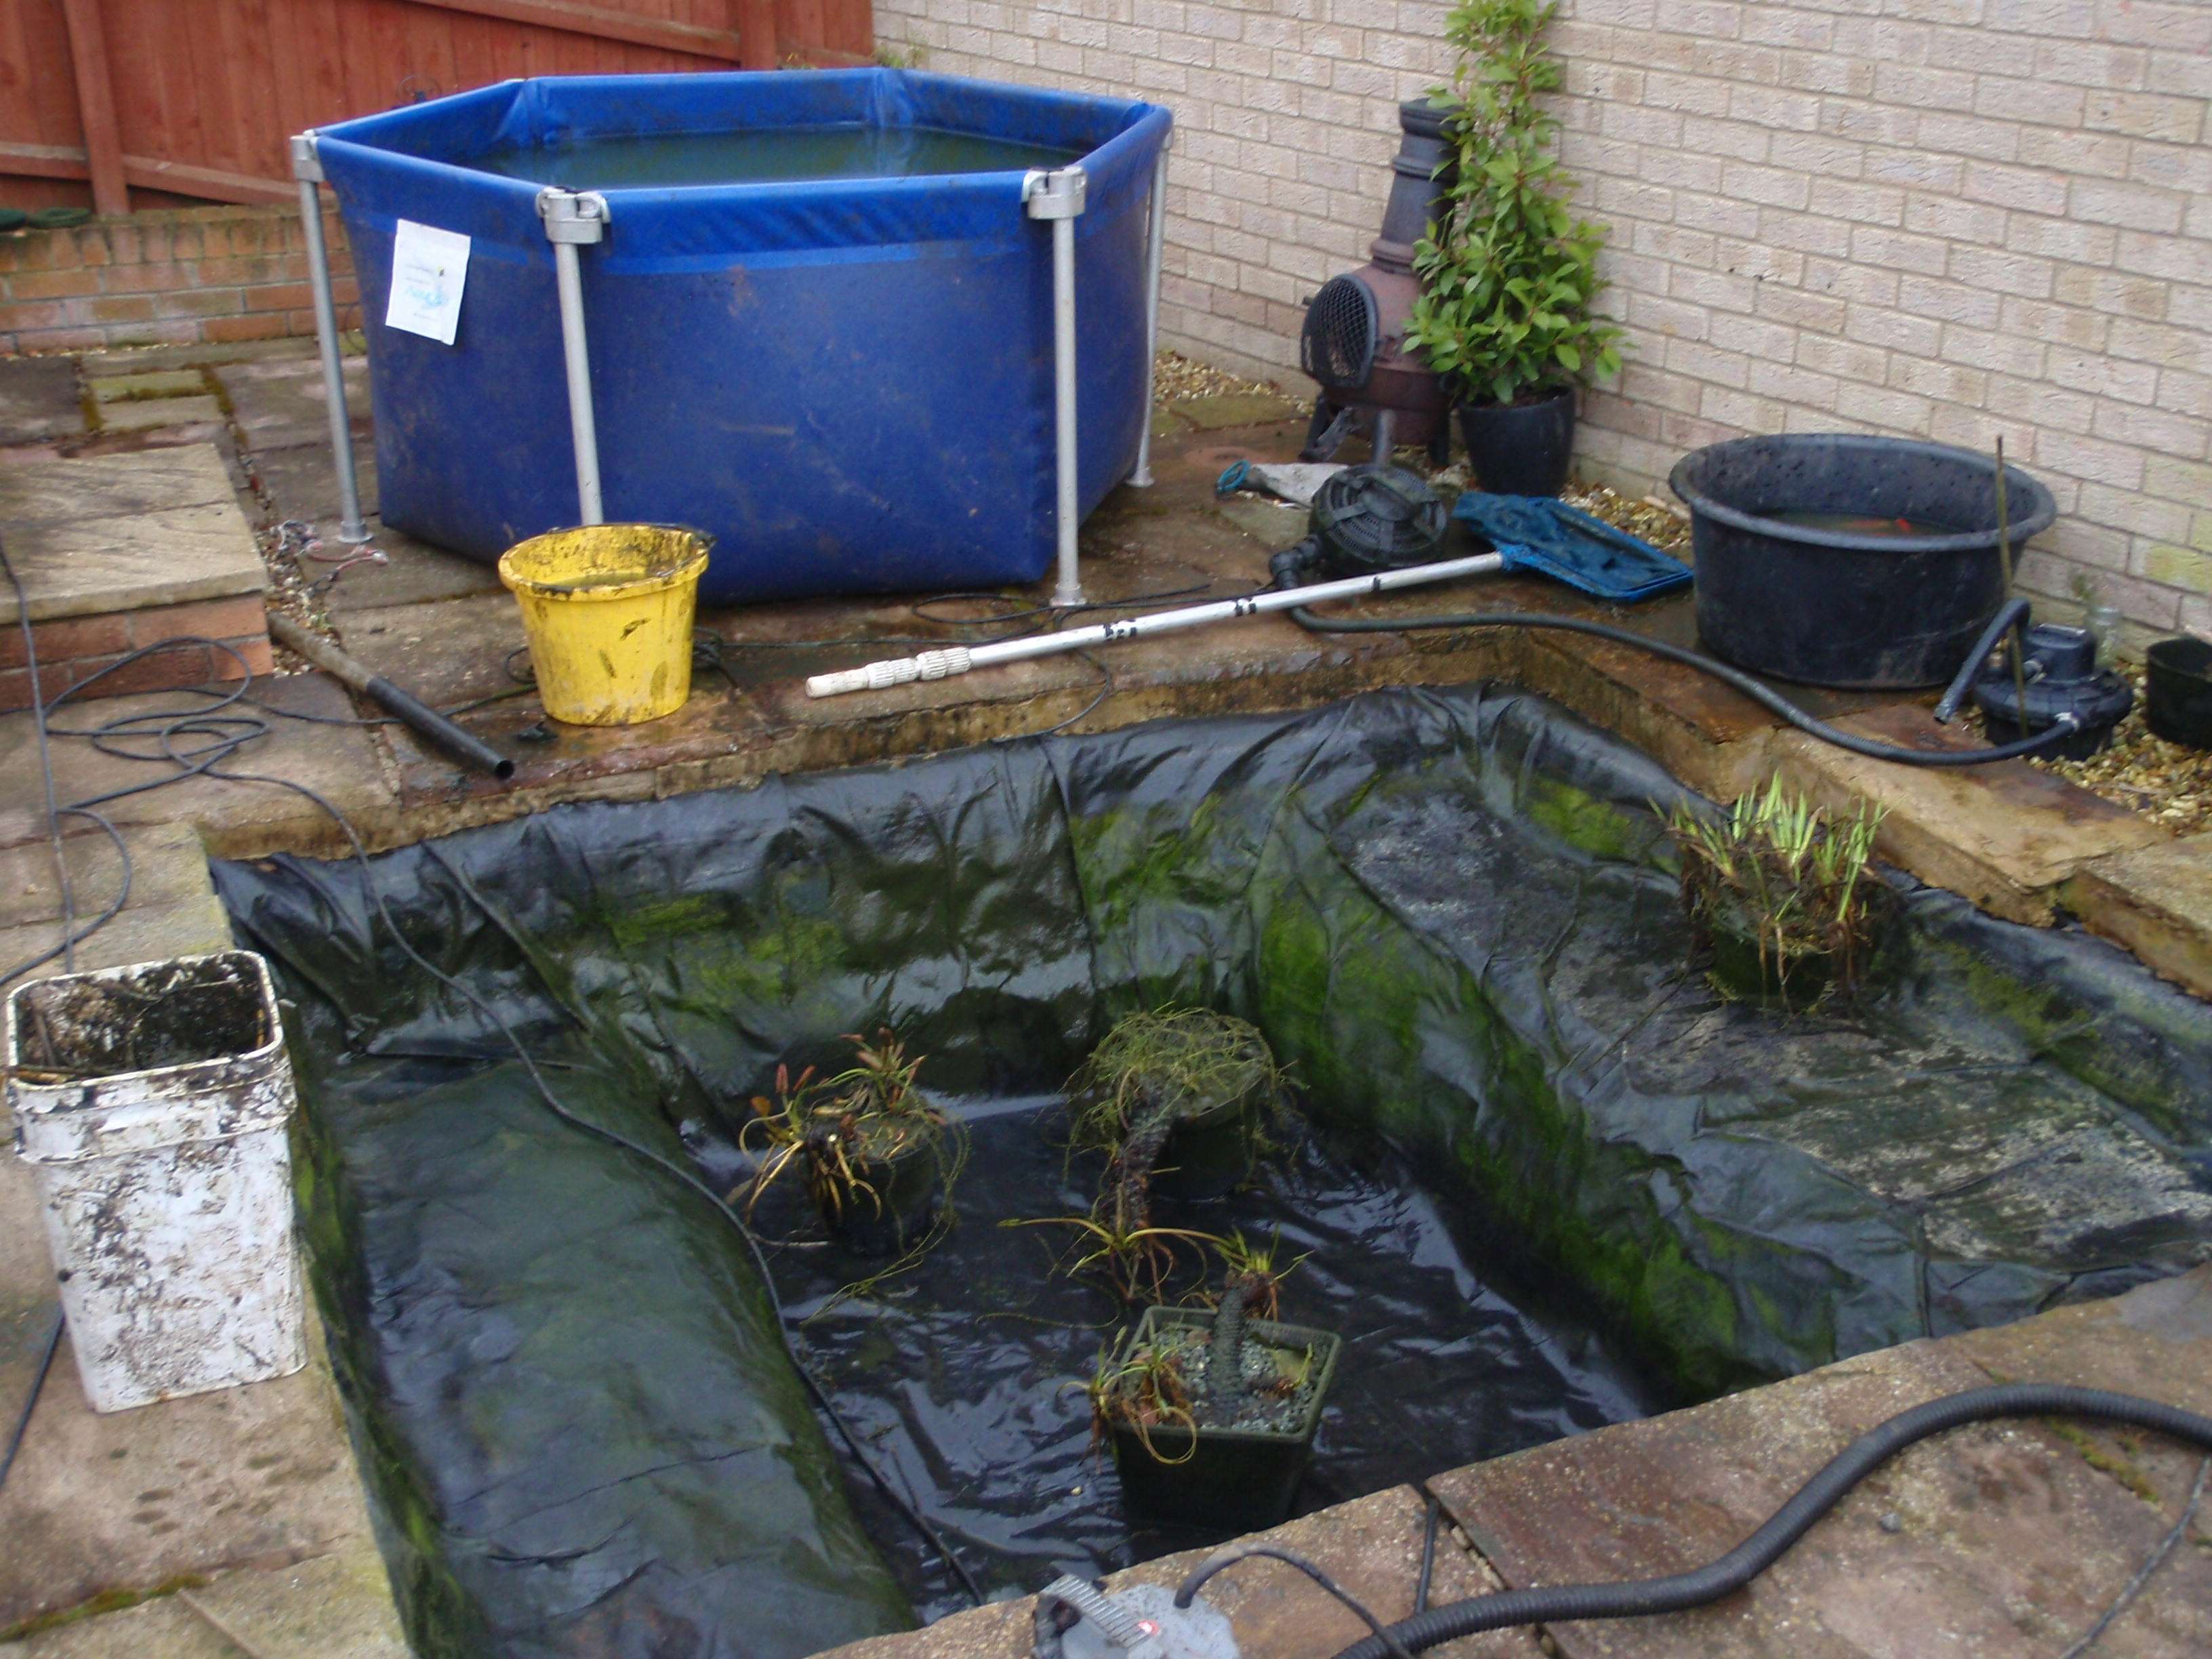 Garden Pond Cleaning A Beginner 39 S Guide Garden Pond Specialists In The Midlands Uk Pond